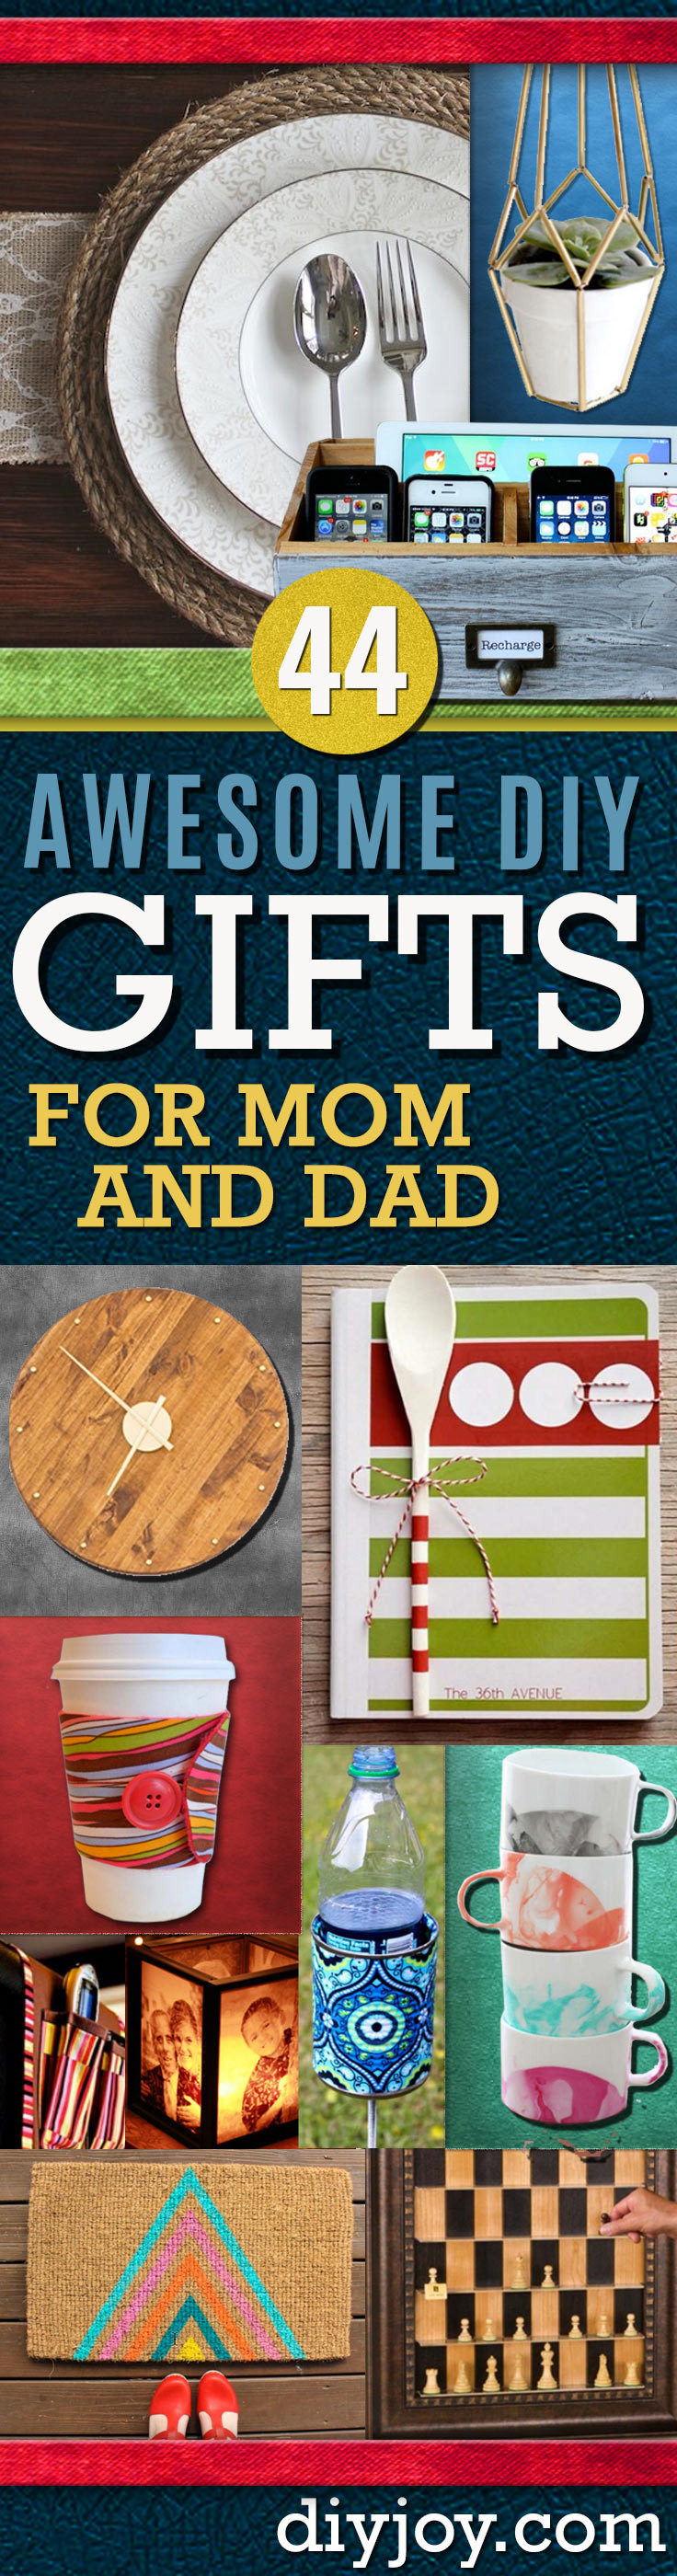 Best ideas about Xmas Gift Ideas For Dad . Save or Pin Awesome DIY Gift Ideas Mom and Dad Will Love Now.